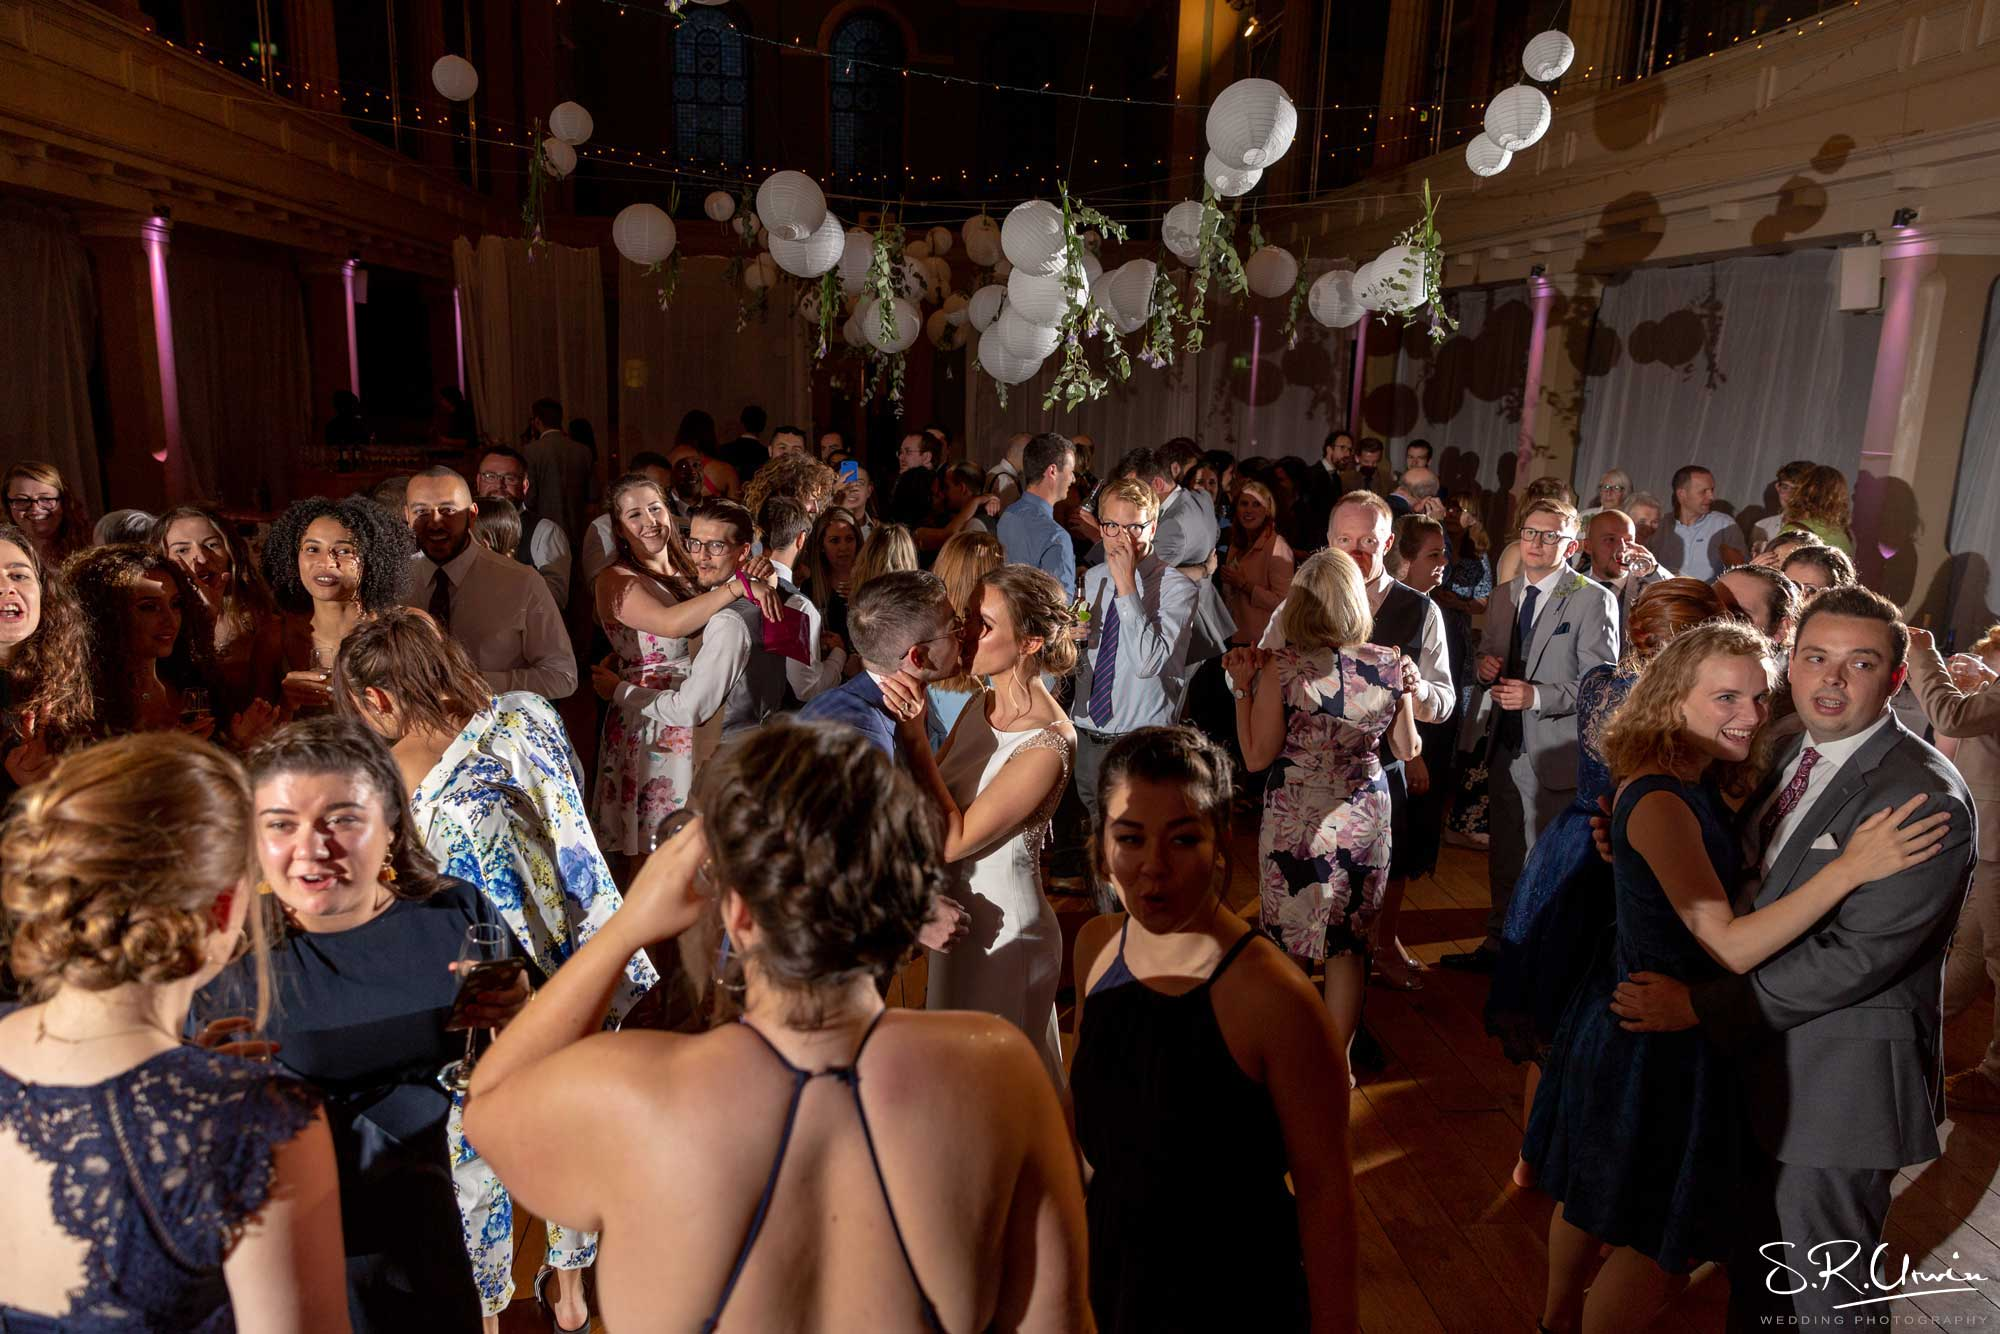 Dancing at wedding reception with hanging decor at St Mary's Venue Hire, London